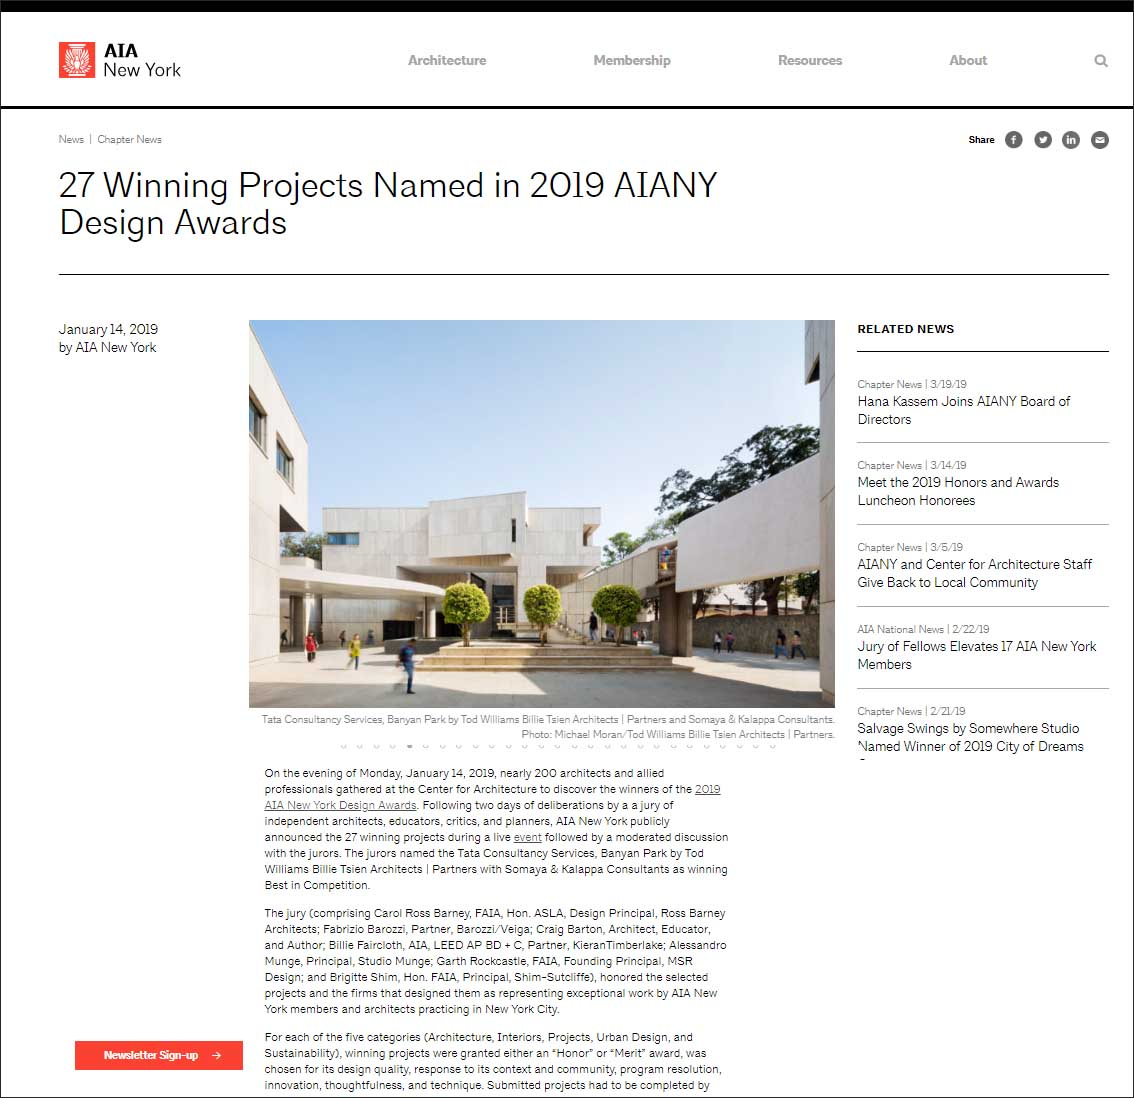 27 Winning Projects Named in 2019 AIANY Design Awards, AIA New York - January 2019